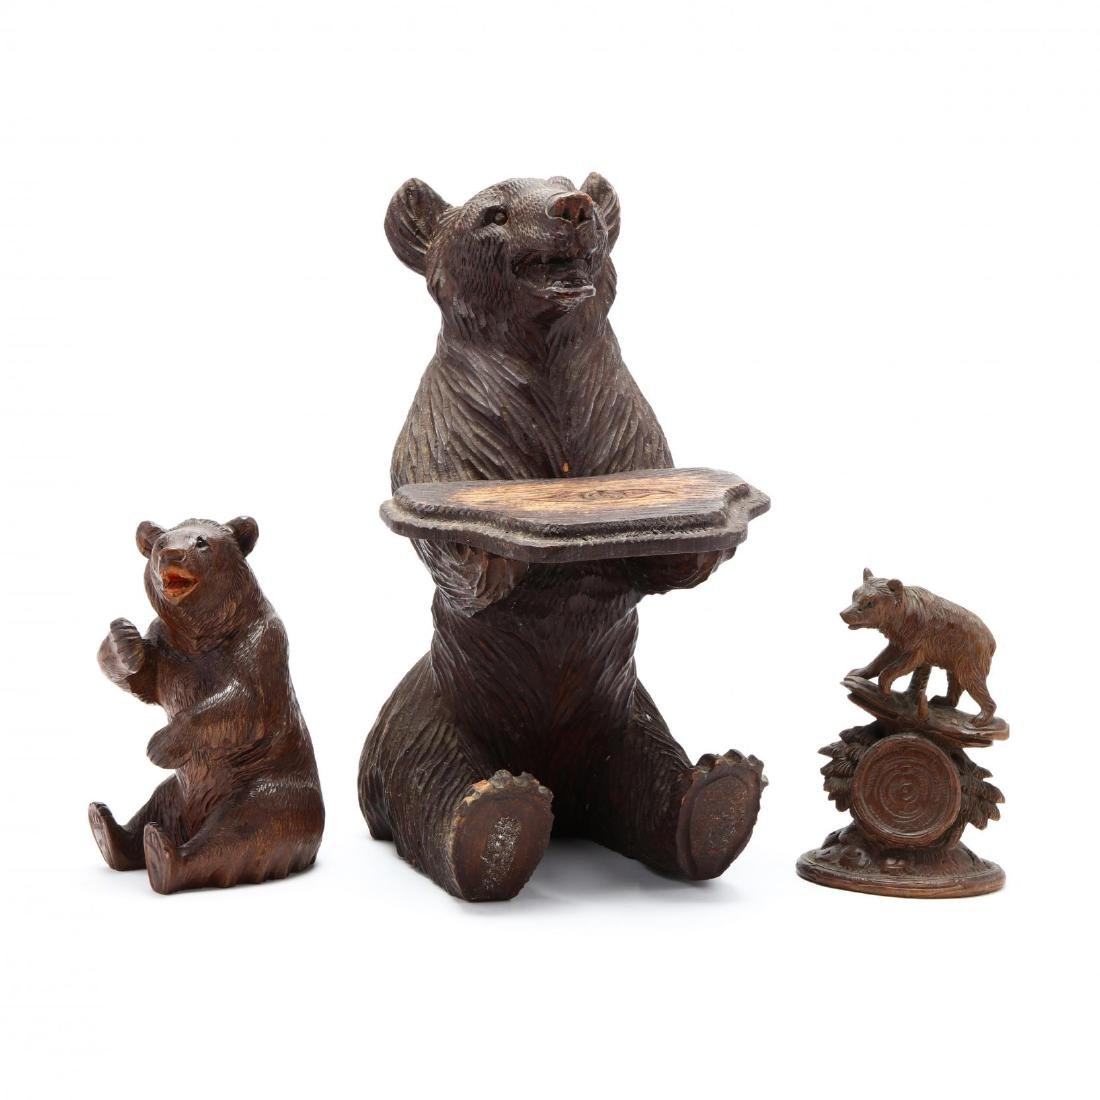 Three Antique Carvings of Bears